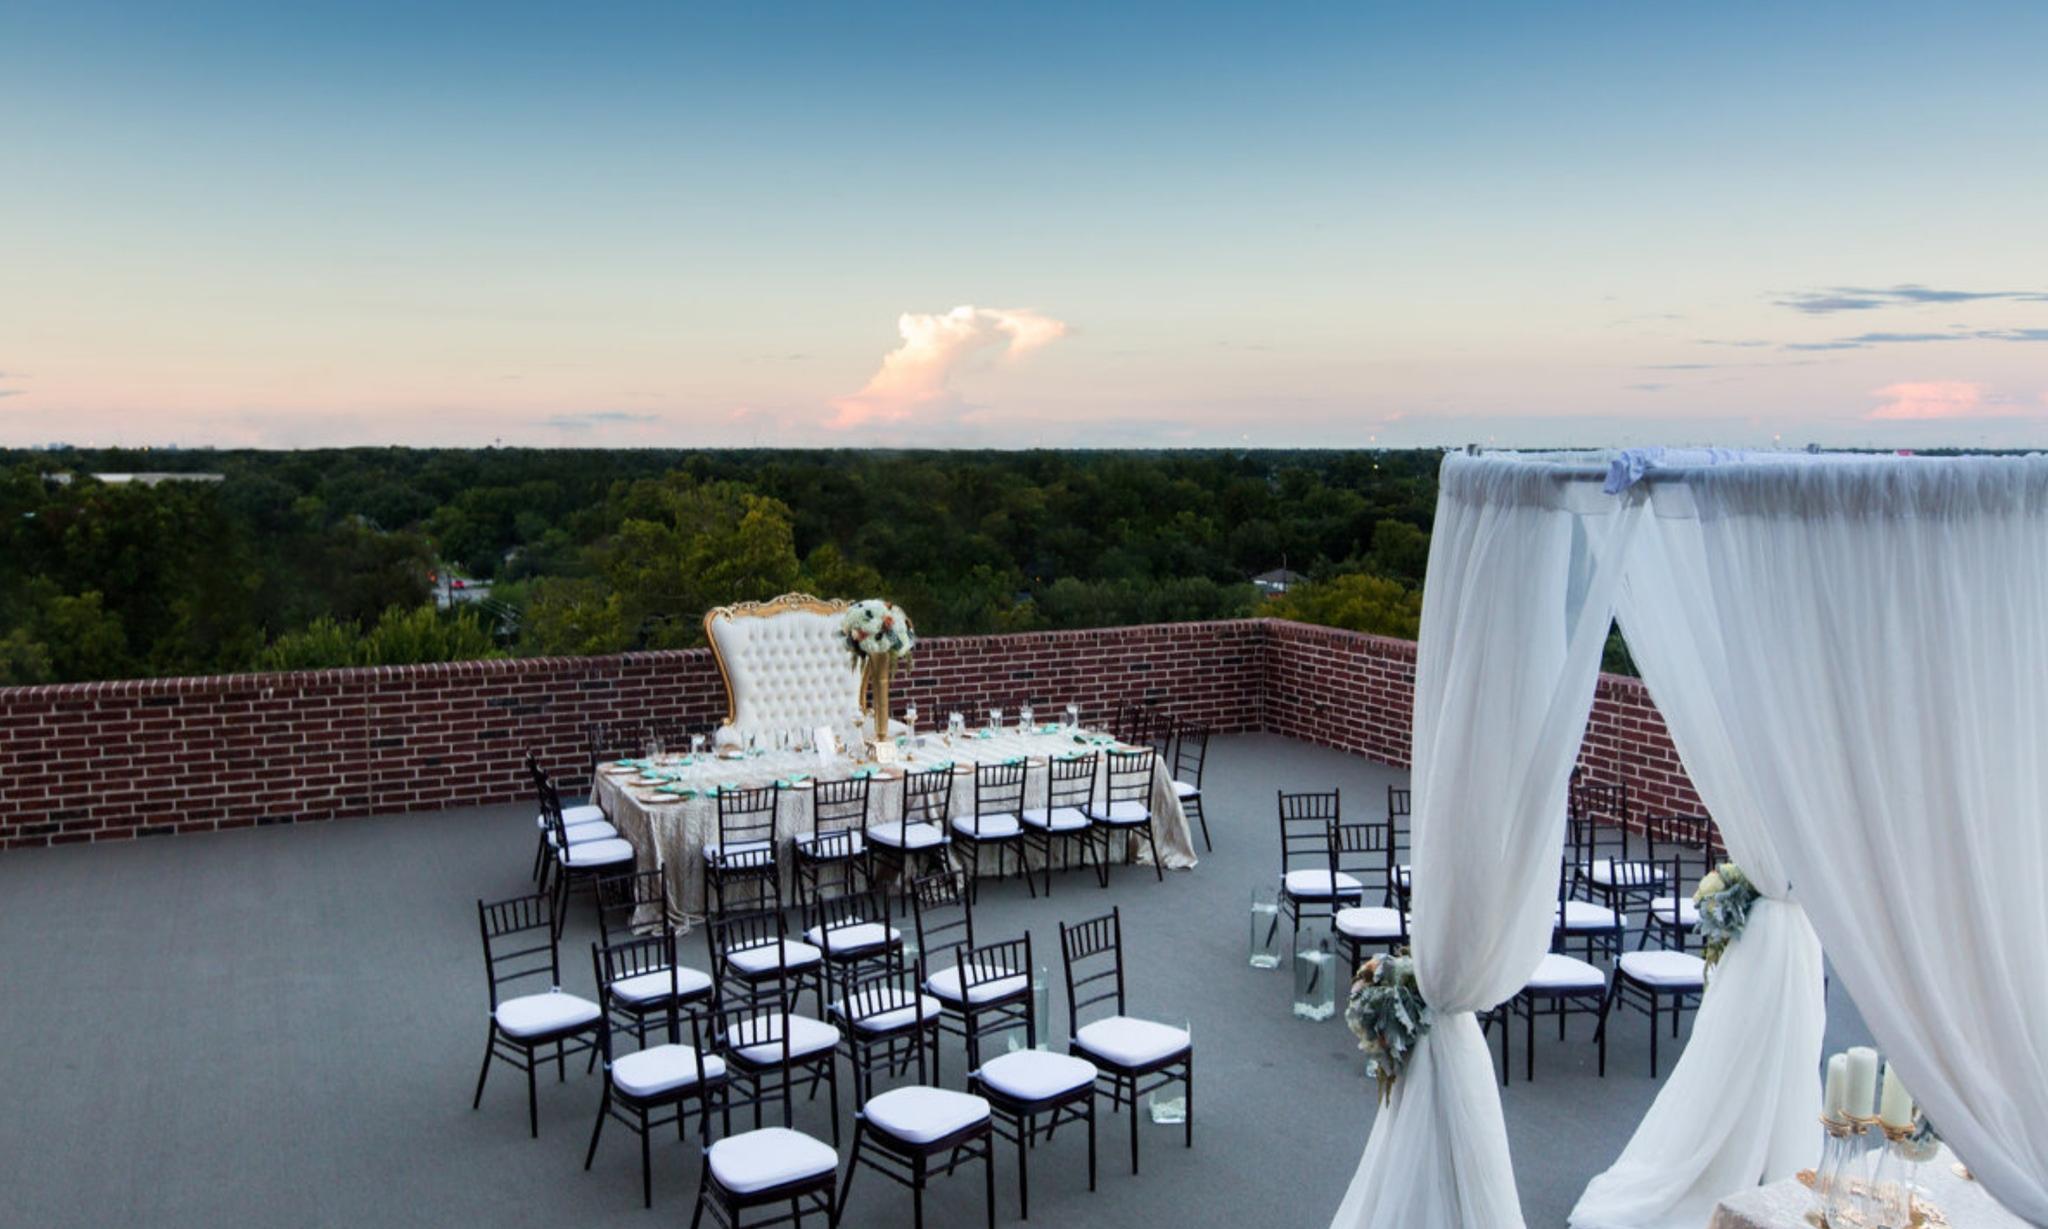 Rooftop wedding in front of the sunset at 111 Studewood Place